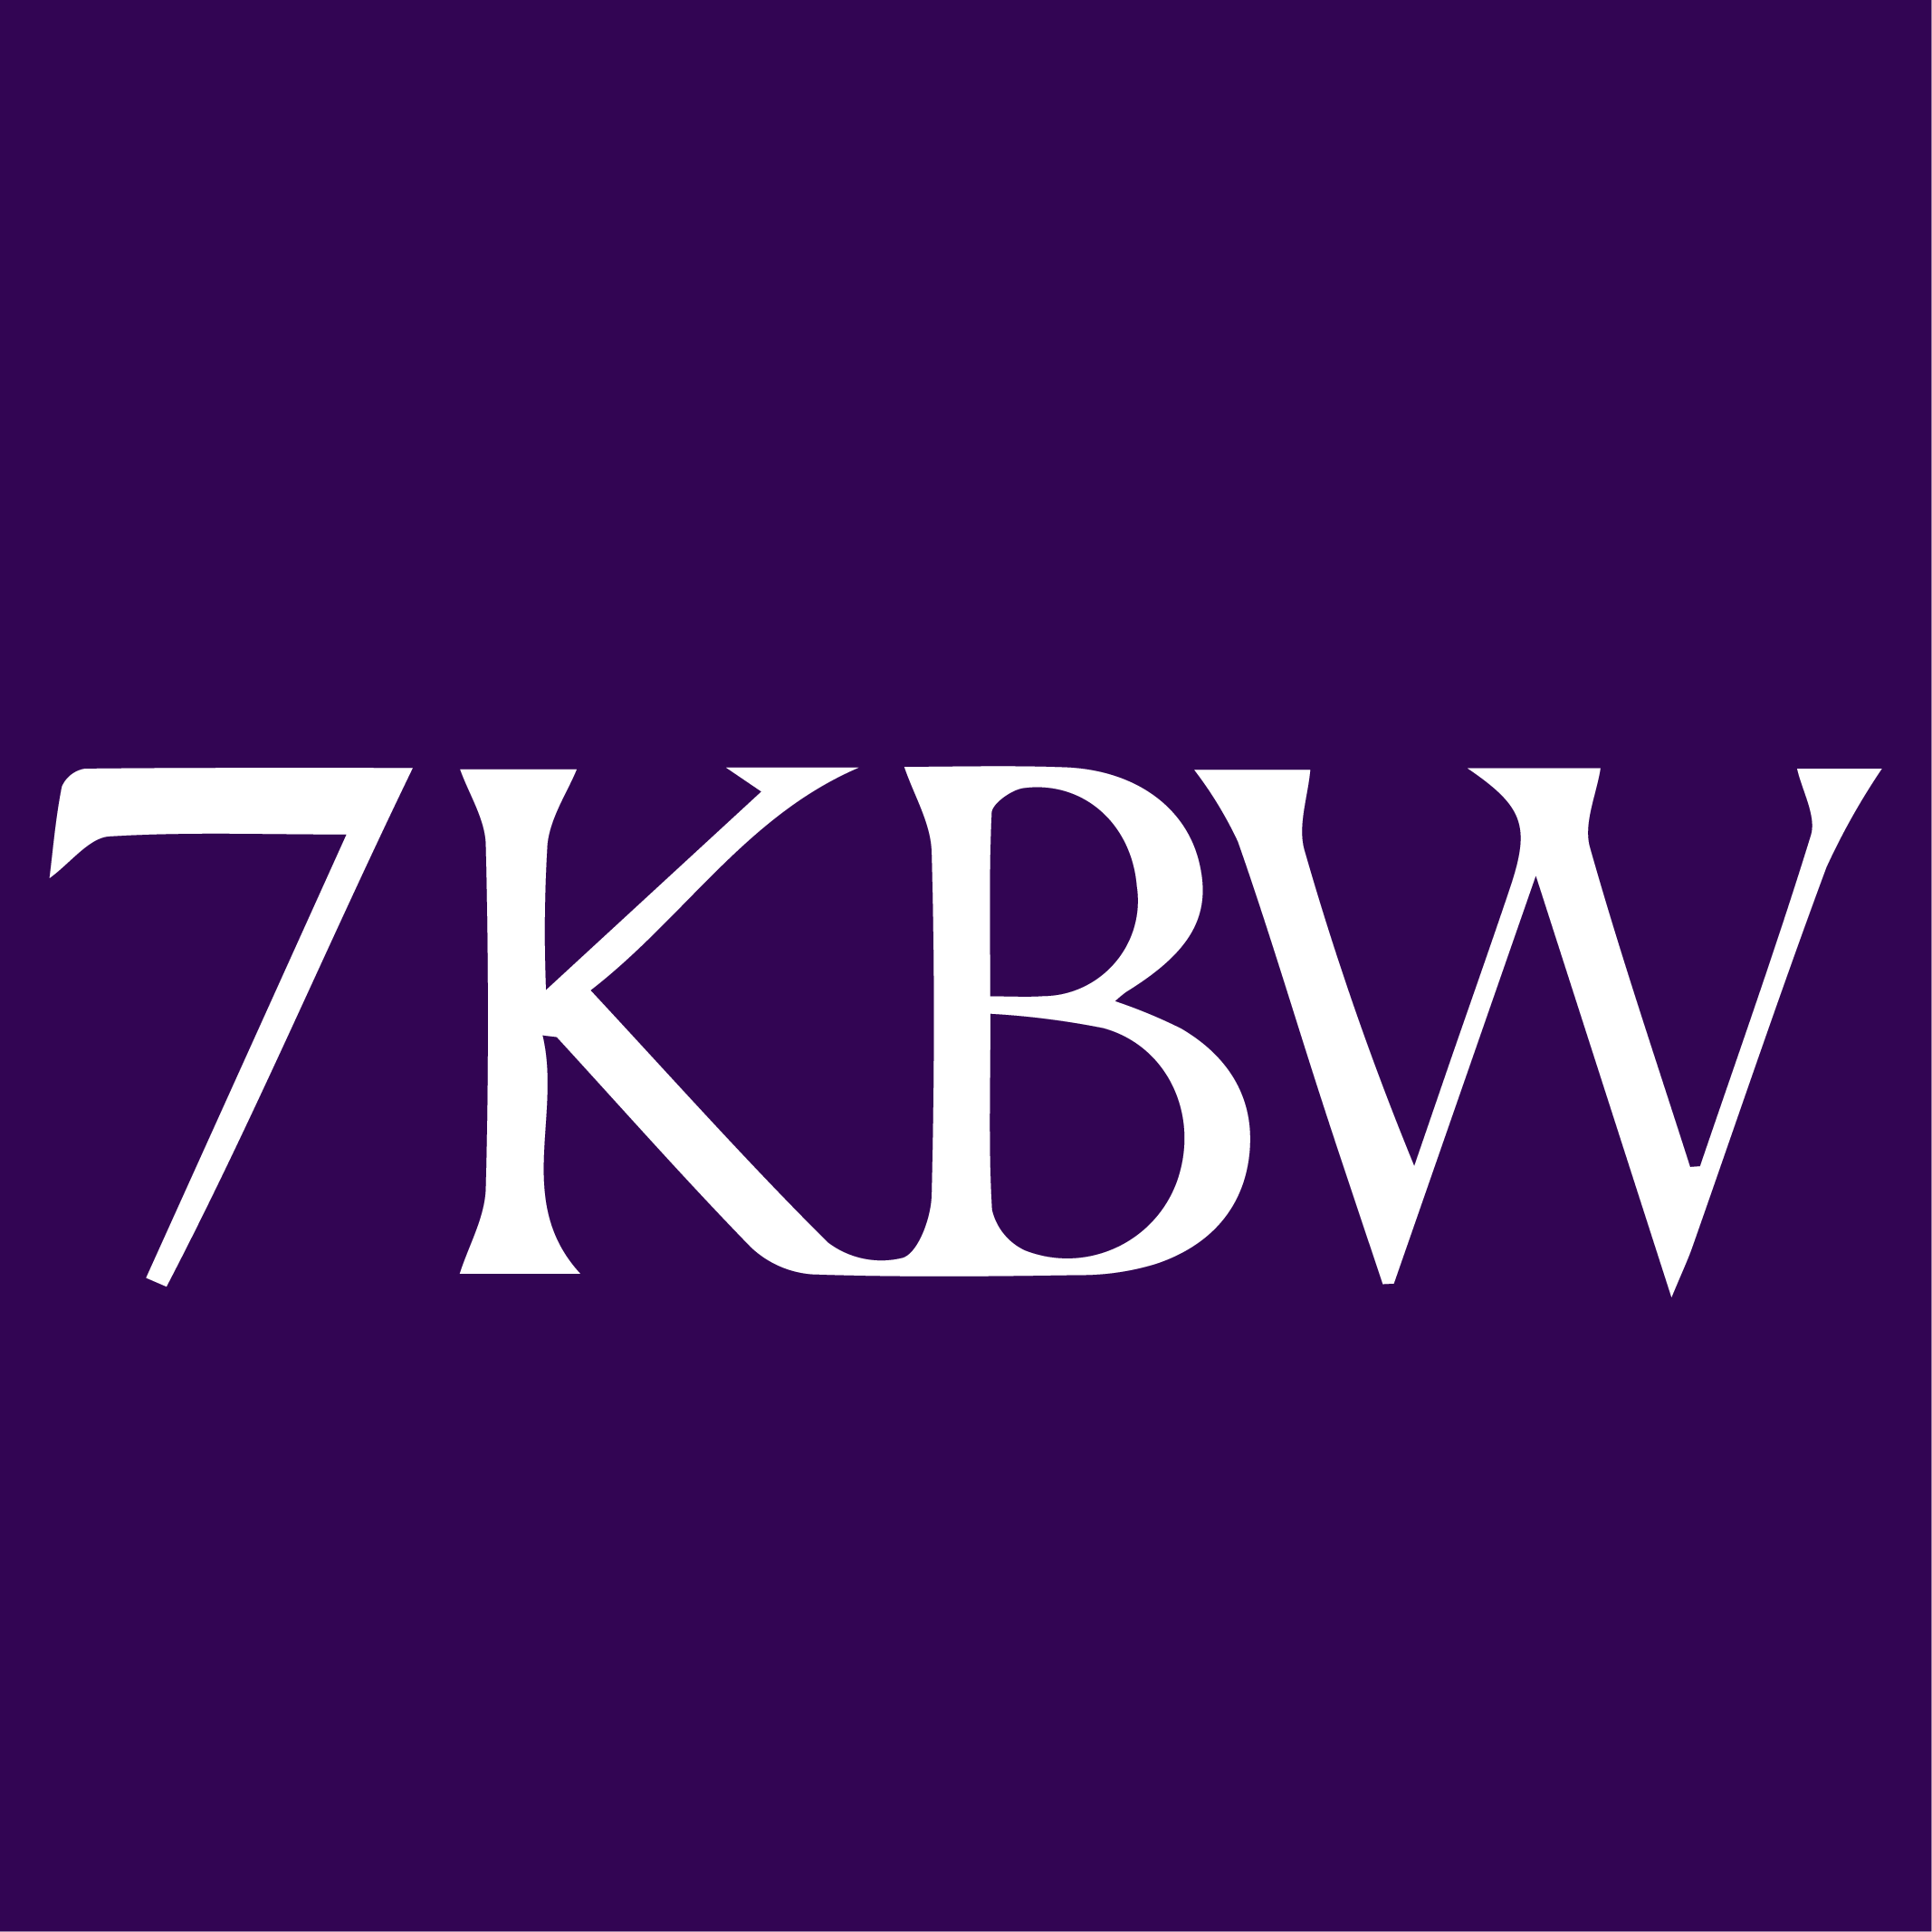 7KBW features in The Lawyer's Top Appeals of 2020